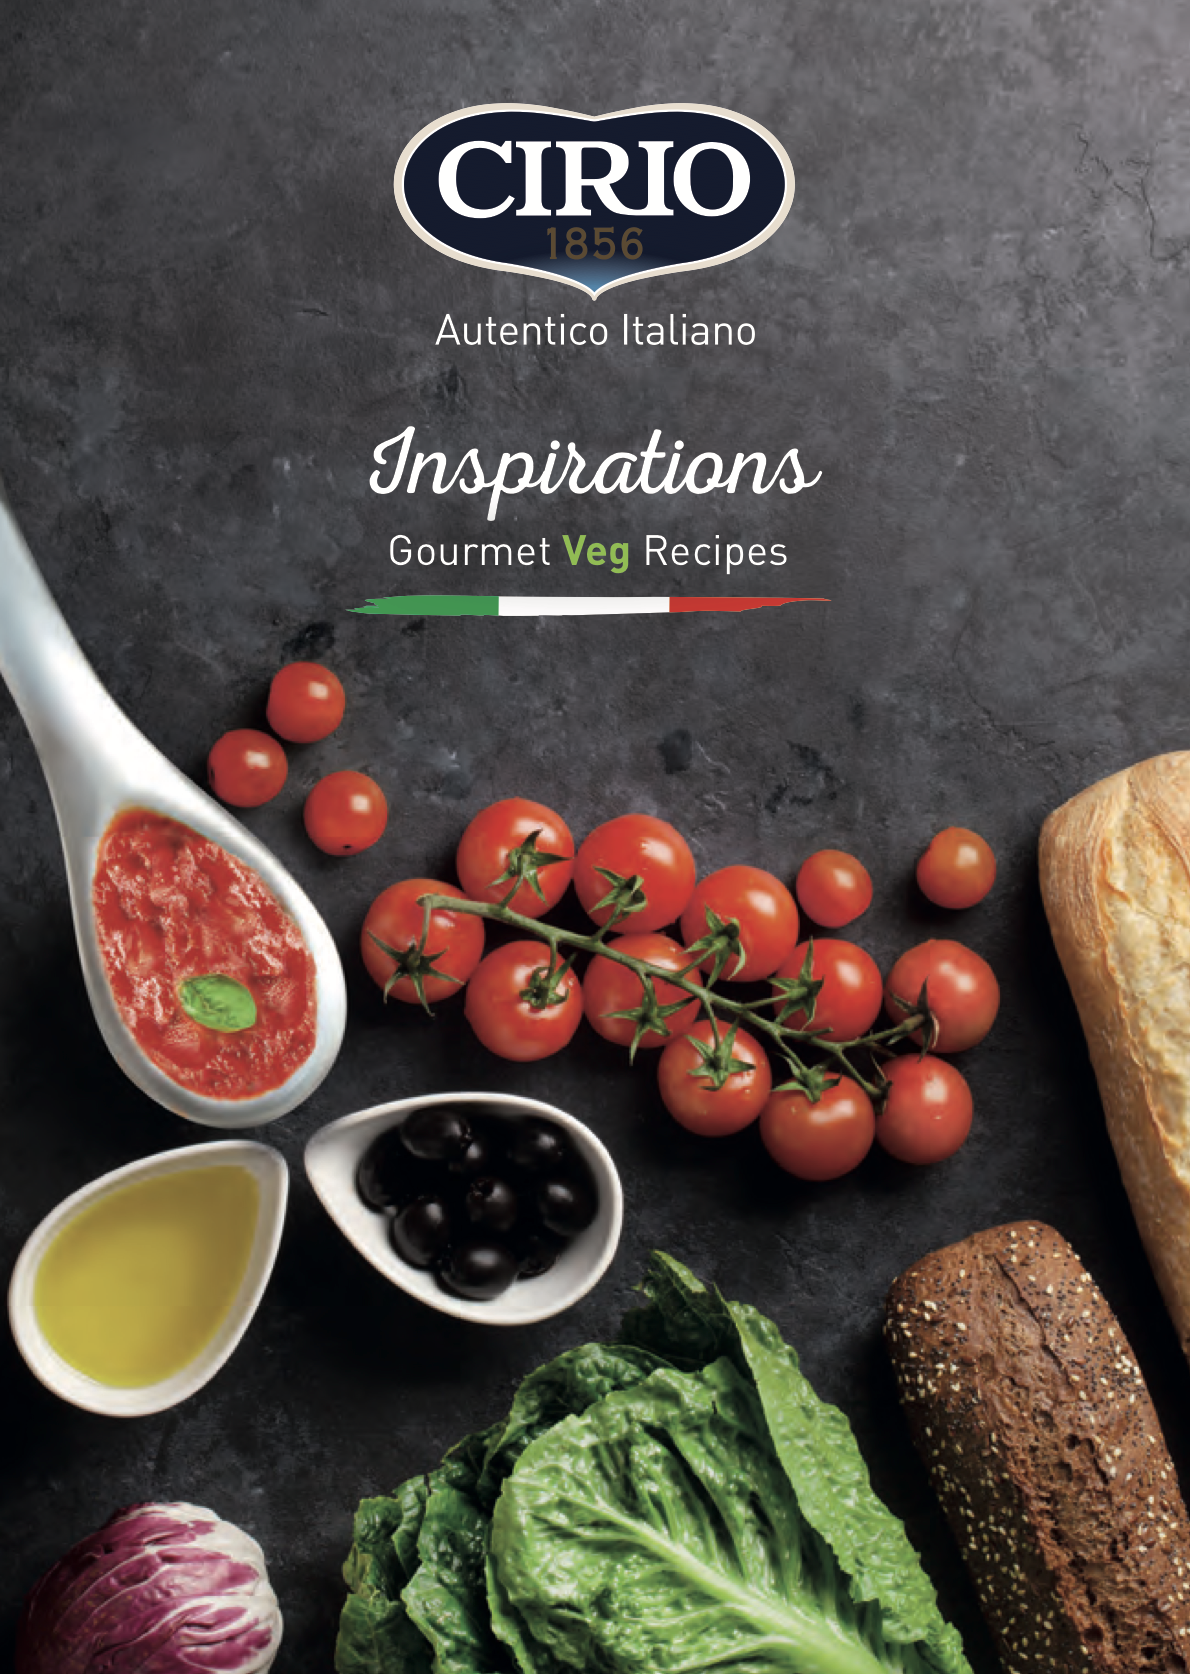 Cirio recipe booklet